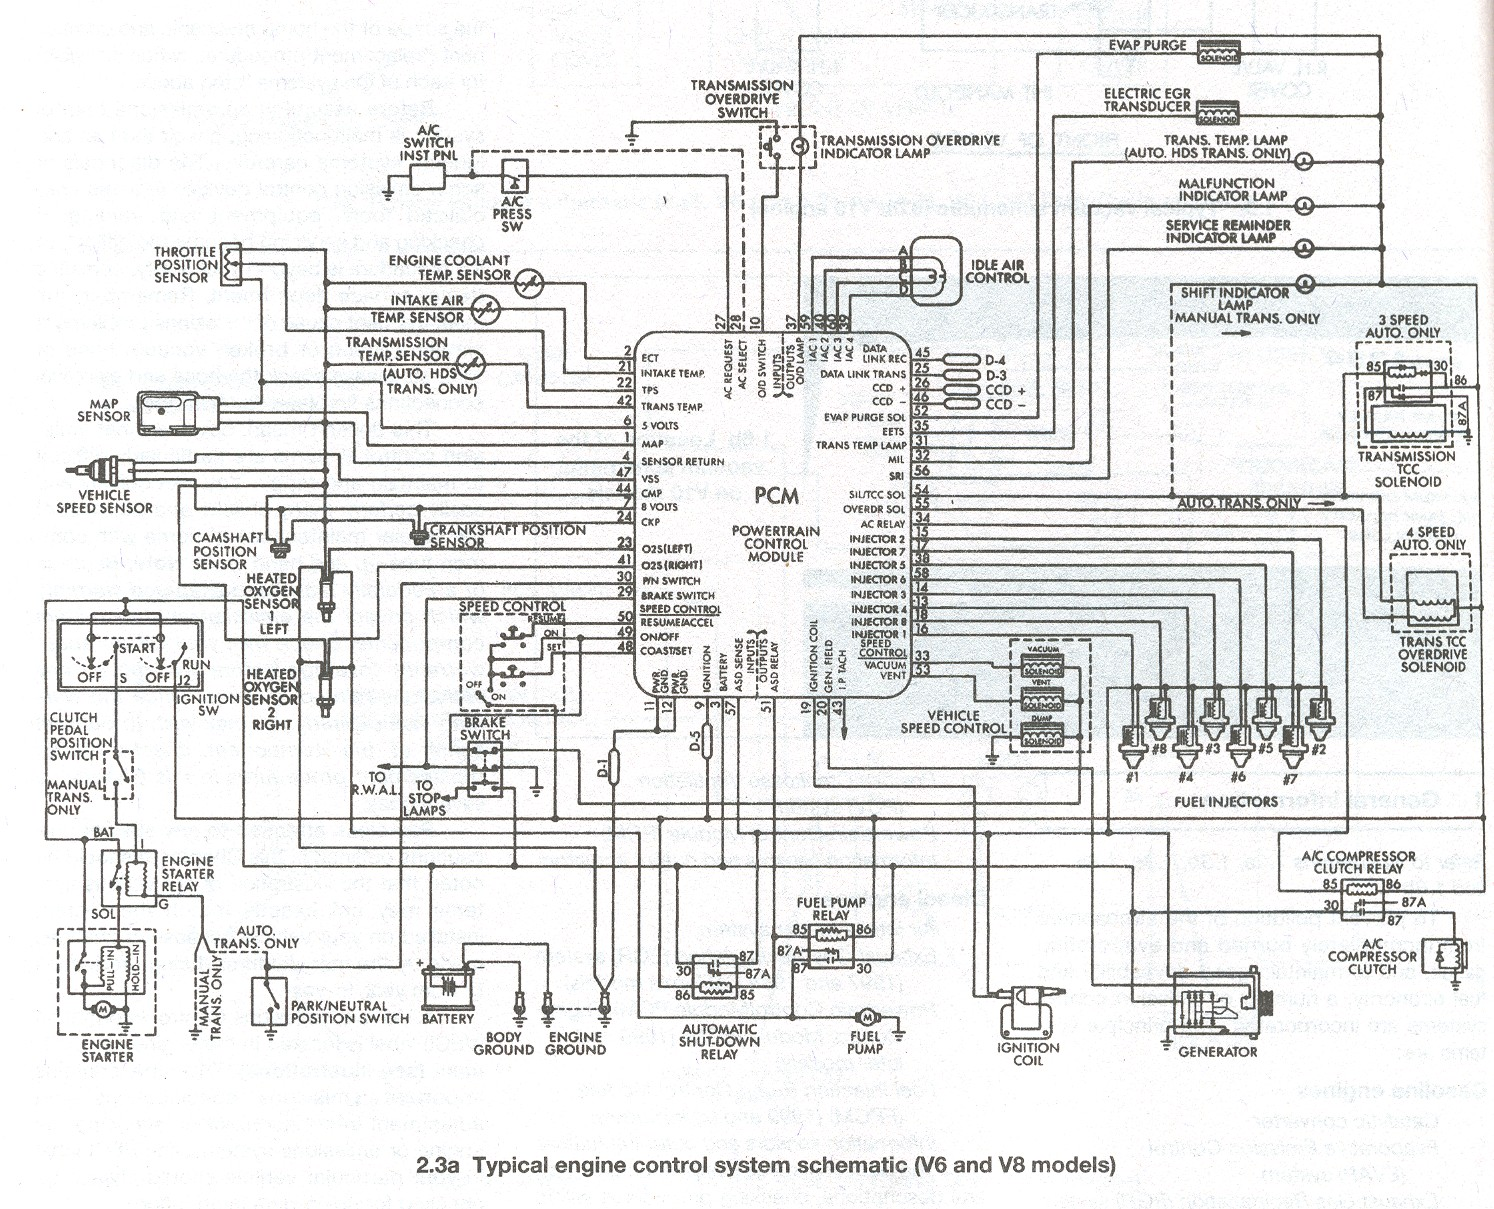 [WRG-2586] 1973 Satellite Wiring Diagram Starter